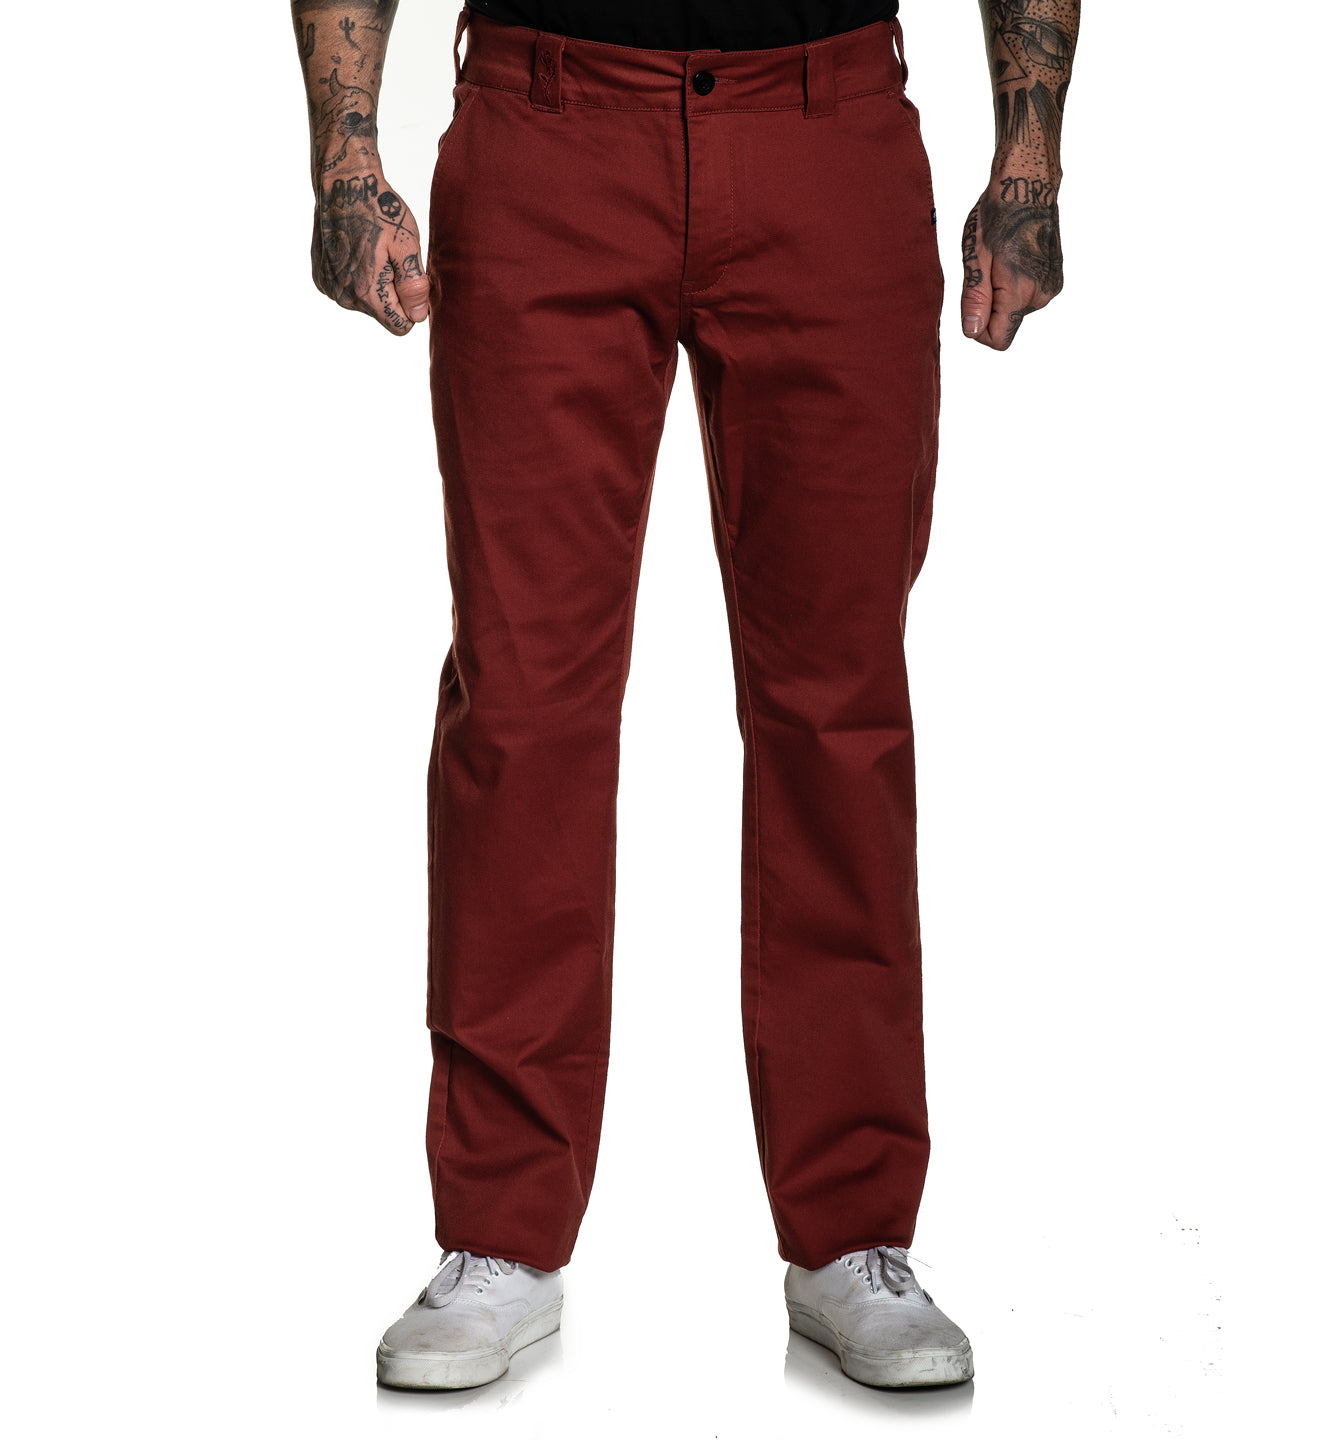 925 Chino Stretch Pant Rosewood